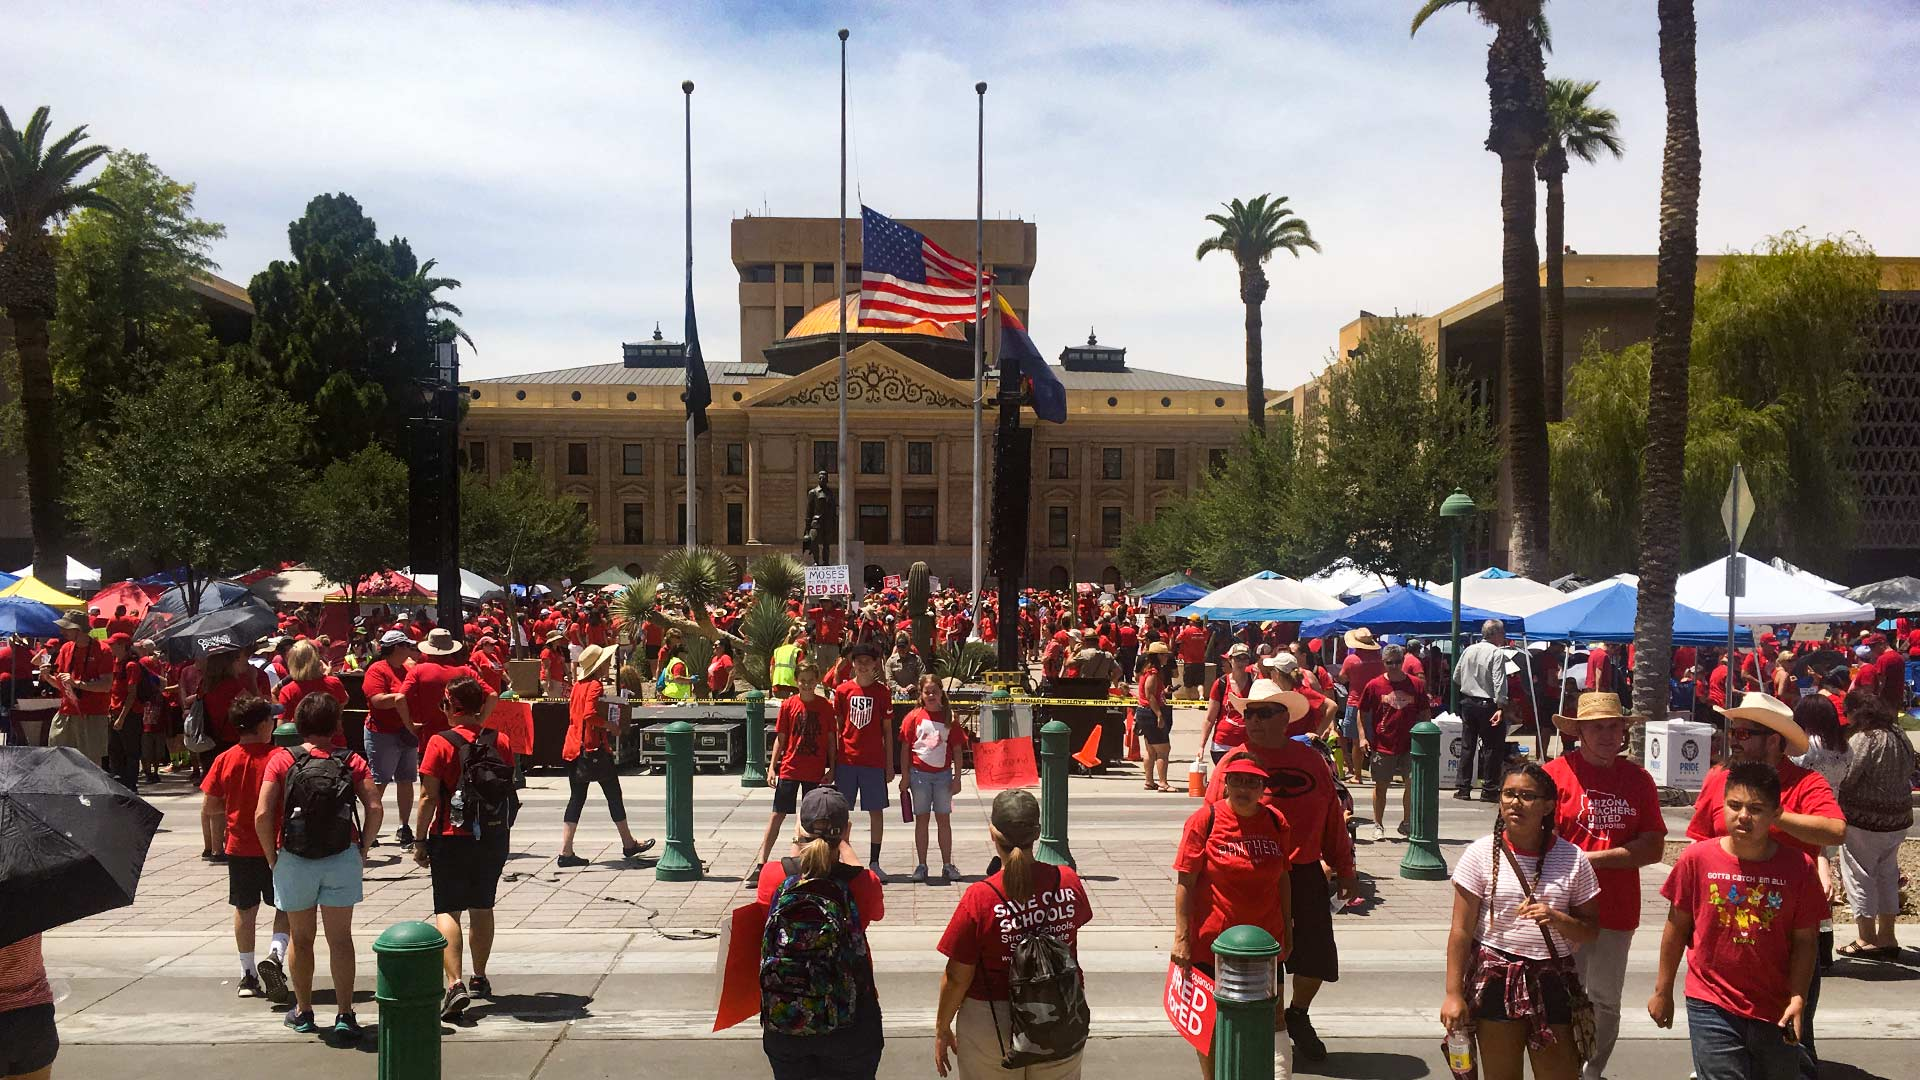 #RedForEd demonstrators at the Arizona Capitol, April 30. The protests continued a walkout that started the previous Thursday to demand education funding.